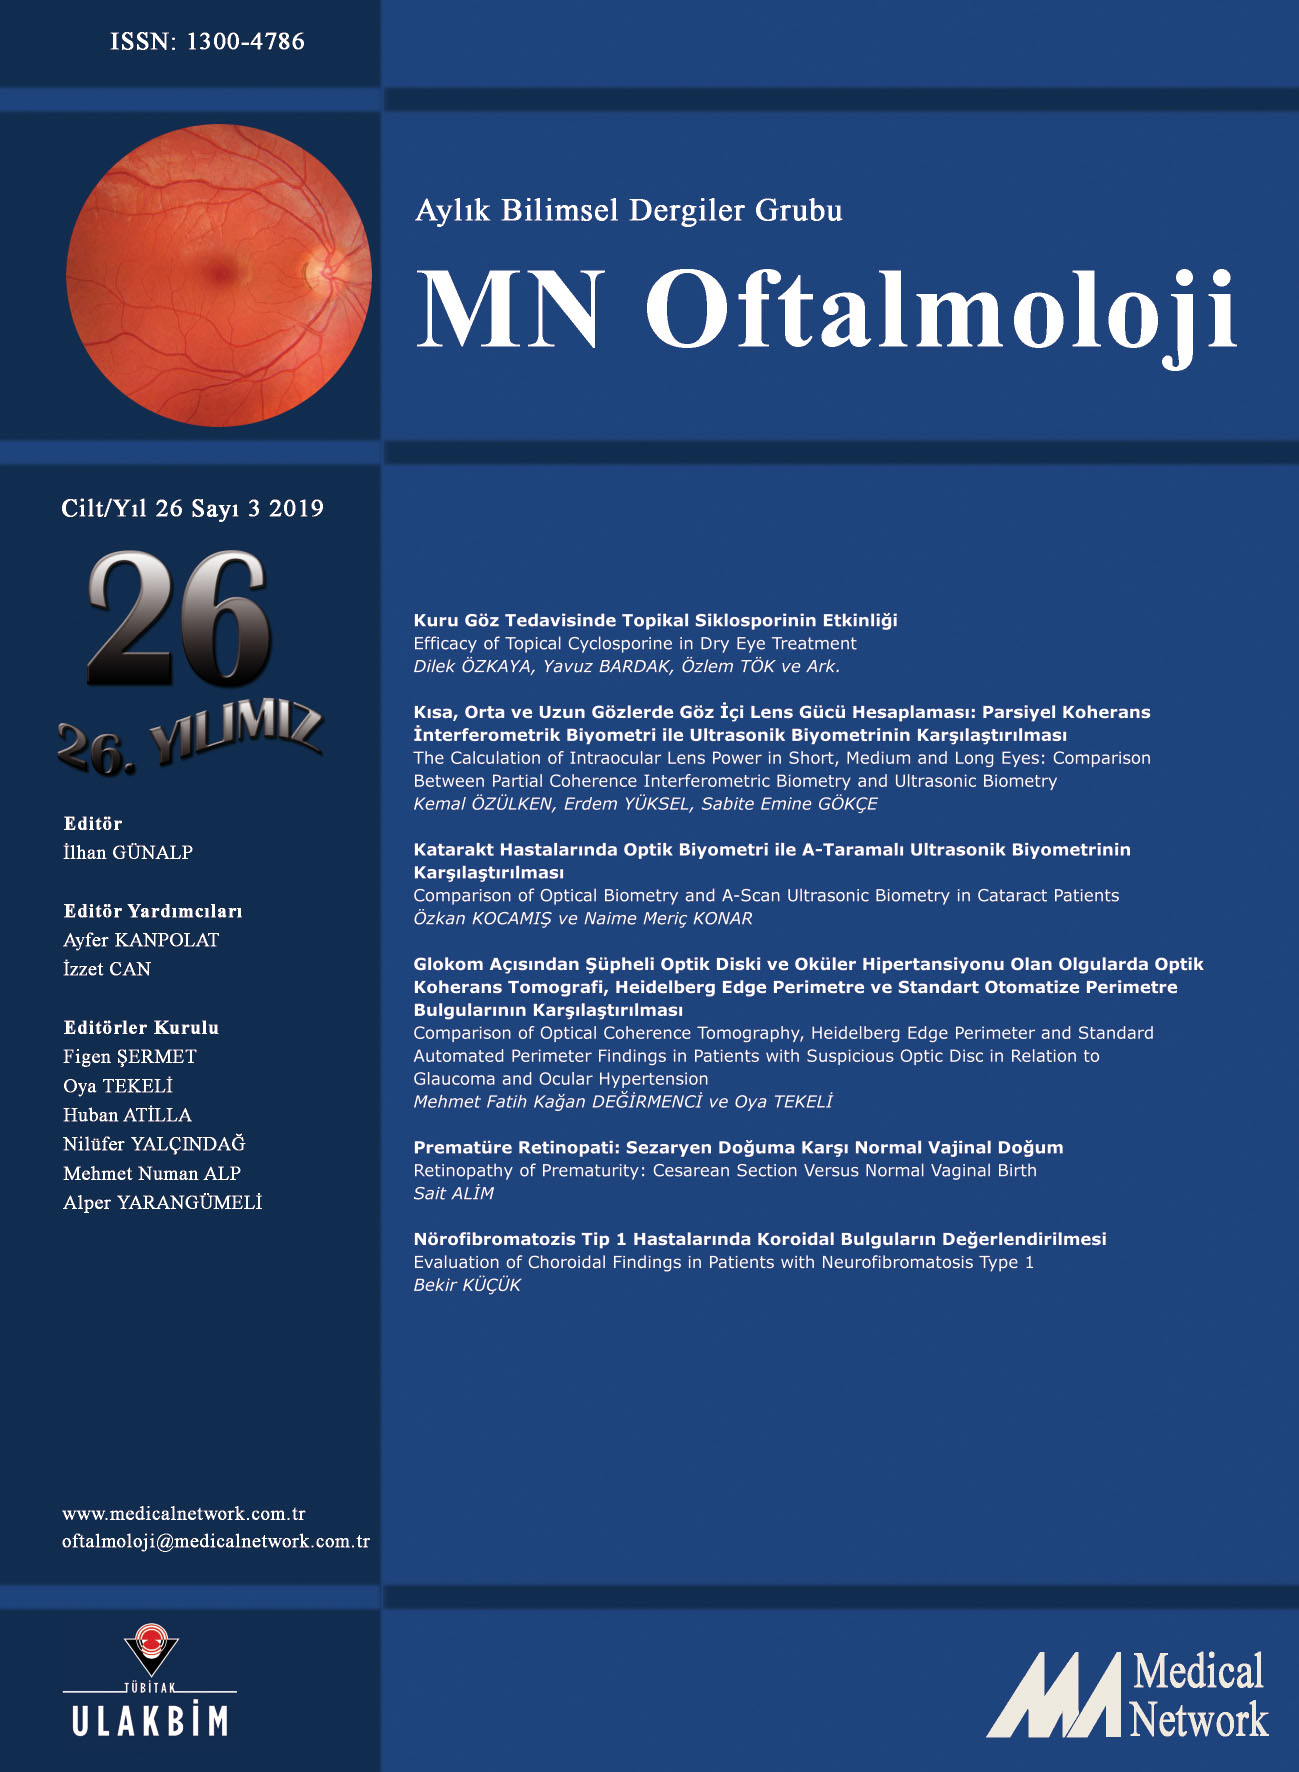 <p>MN Oftalmoloji Cilt: 26 Sayı: 3 2019 (MN Ophthalmology Volume: 26 No 3 2019)</p>